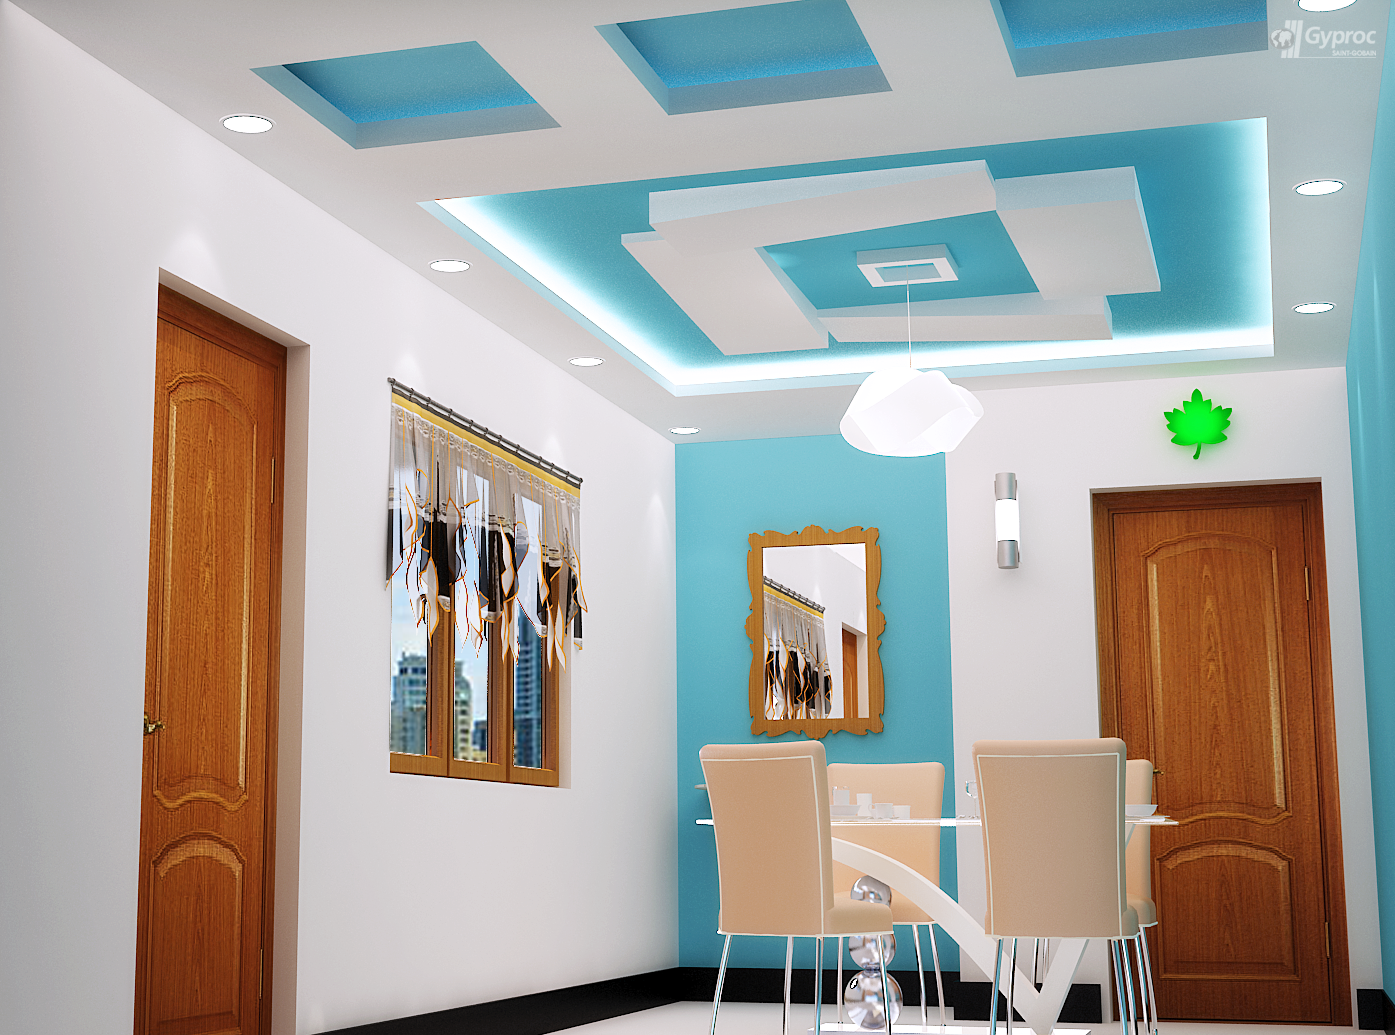 False ceiling designs for other rooms saint gobain for Interior house design ceiling